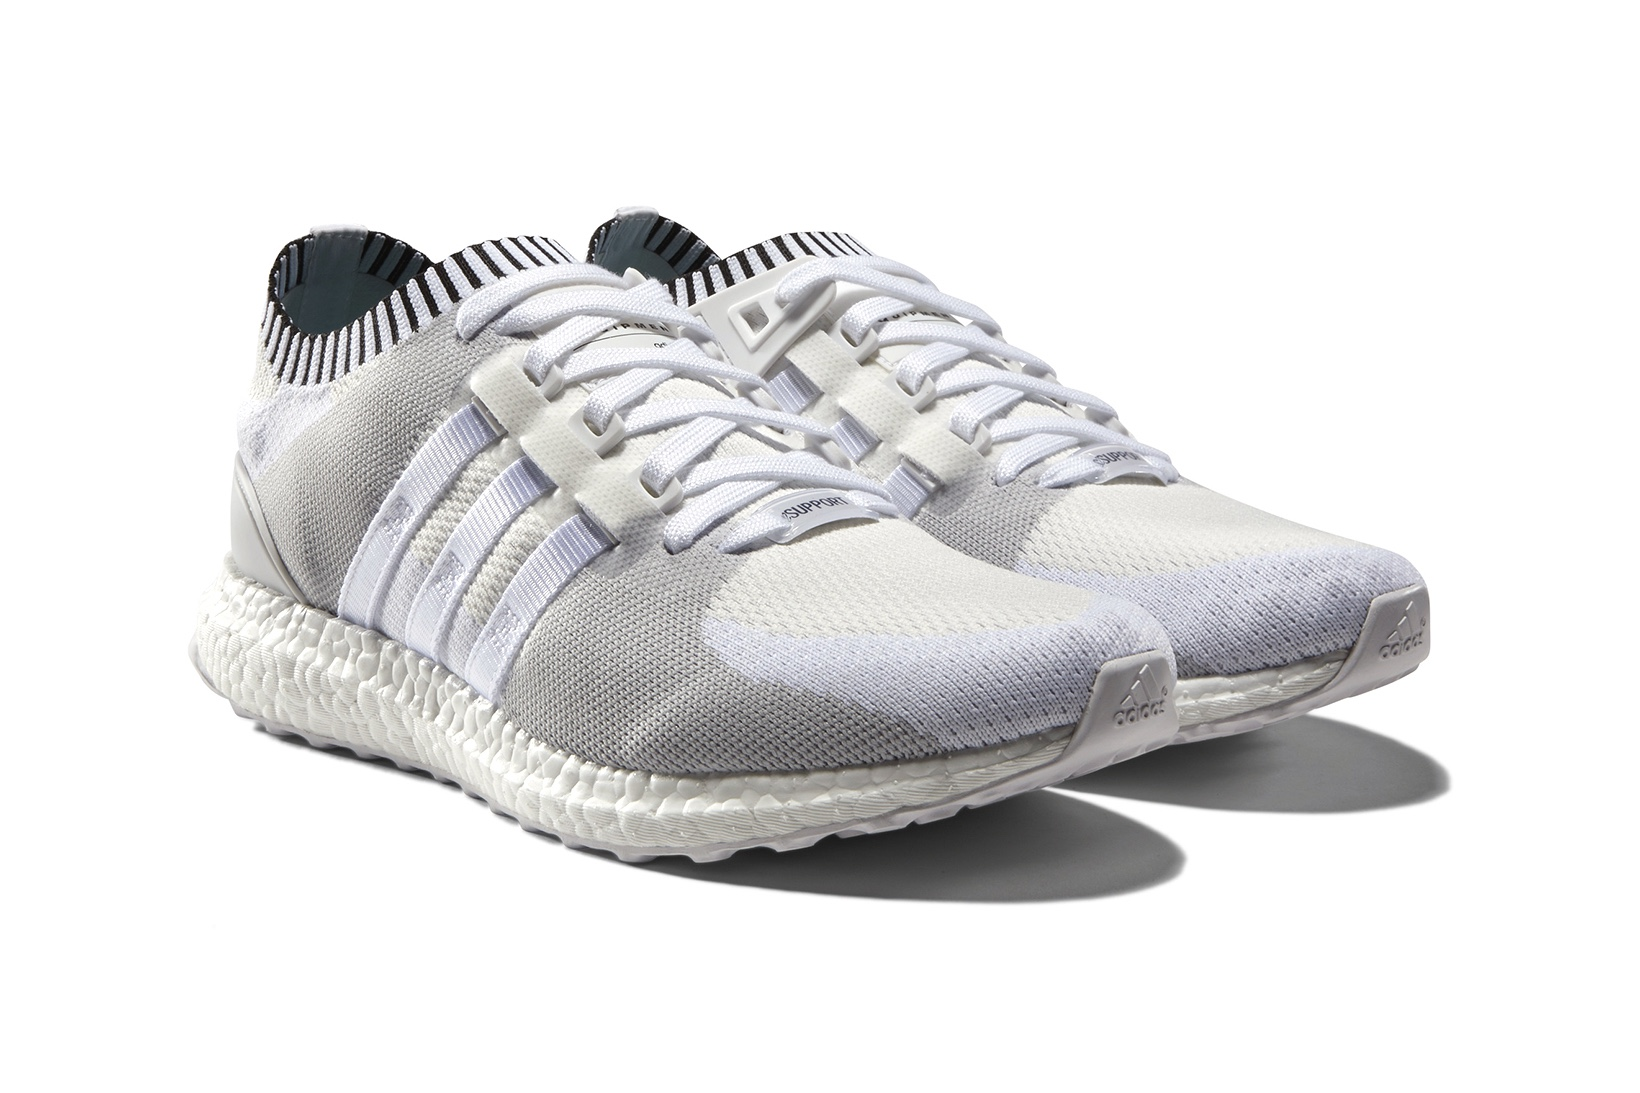 adidas-eqt-support-ultra-pk-03